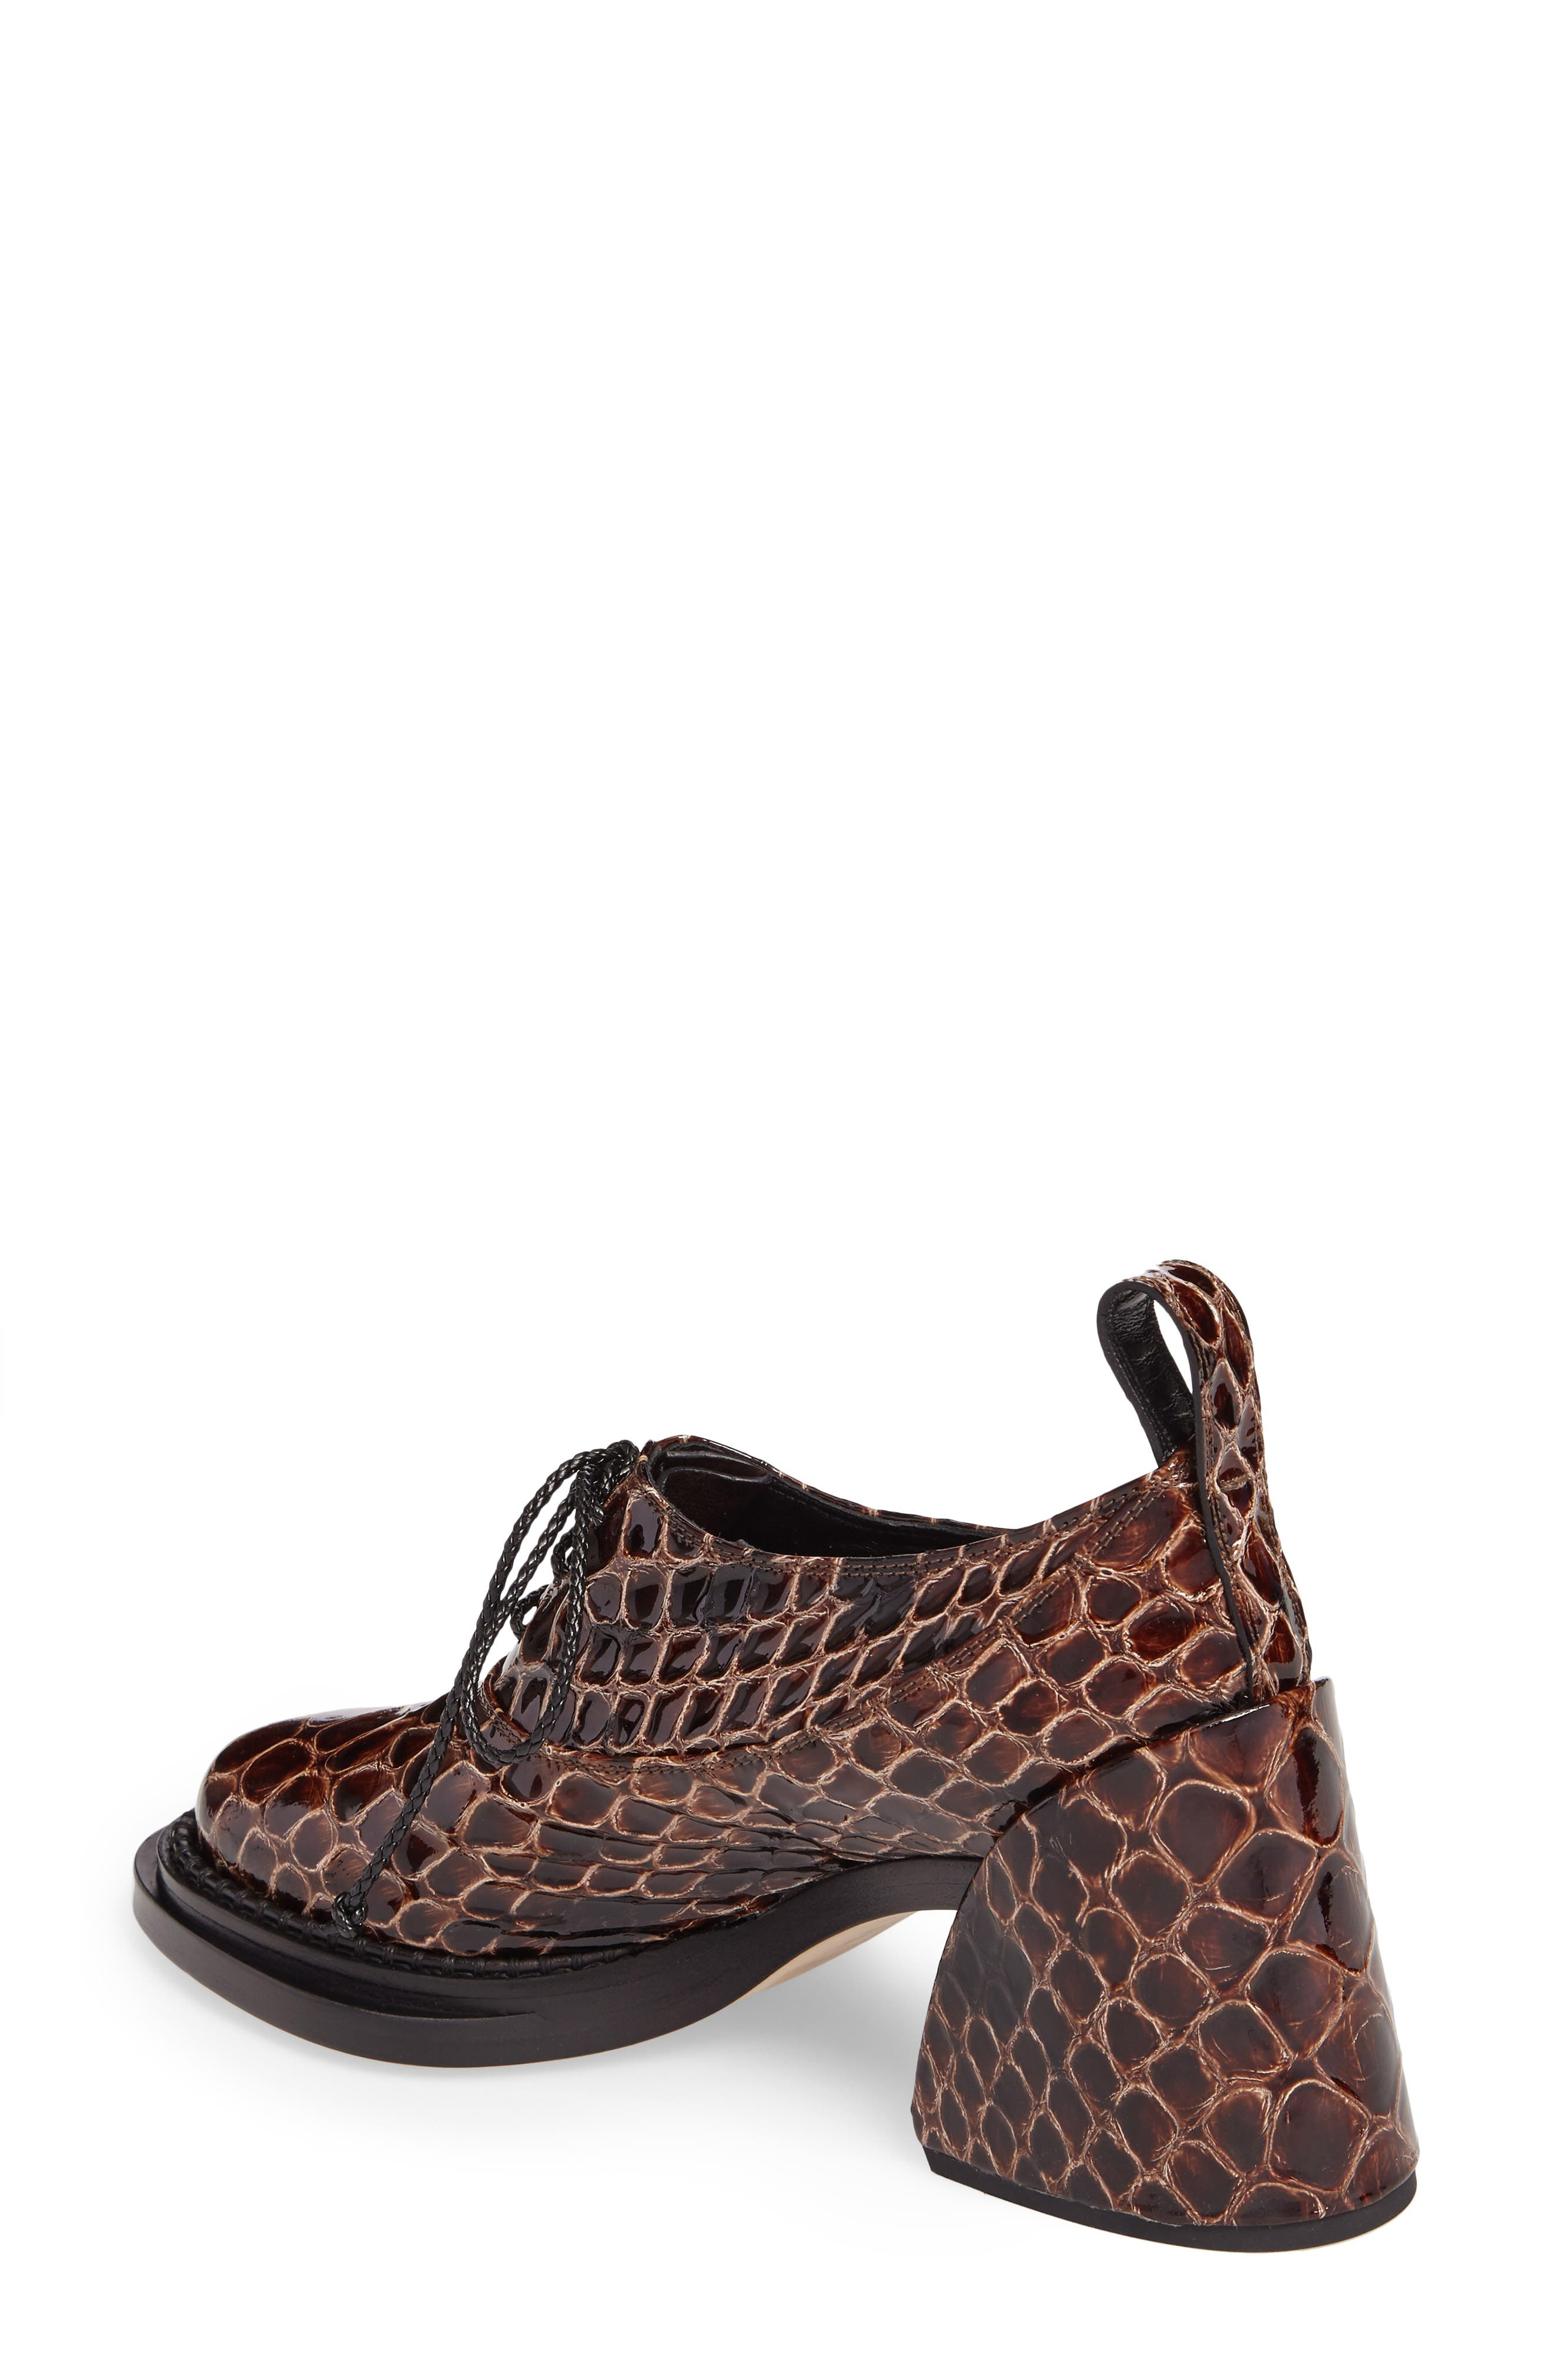 Shell Heel Snake Embossed Leather Oxford,                             Alternate thumbnail 2, color,                             Brown